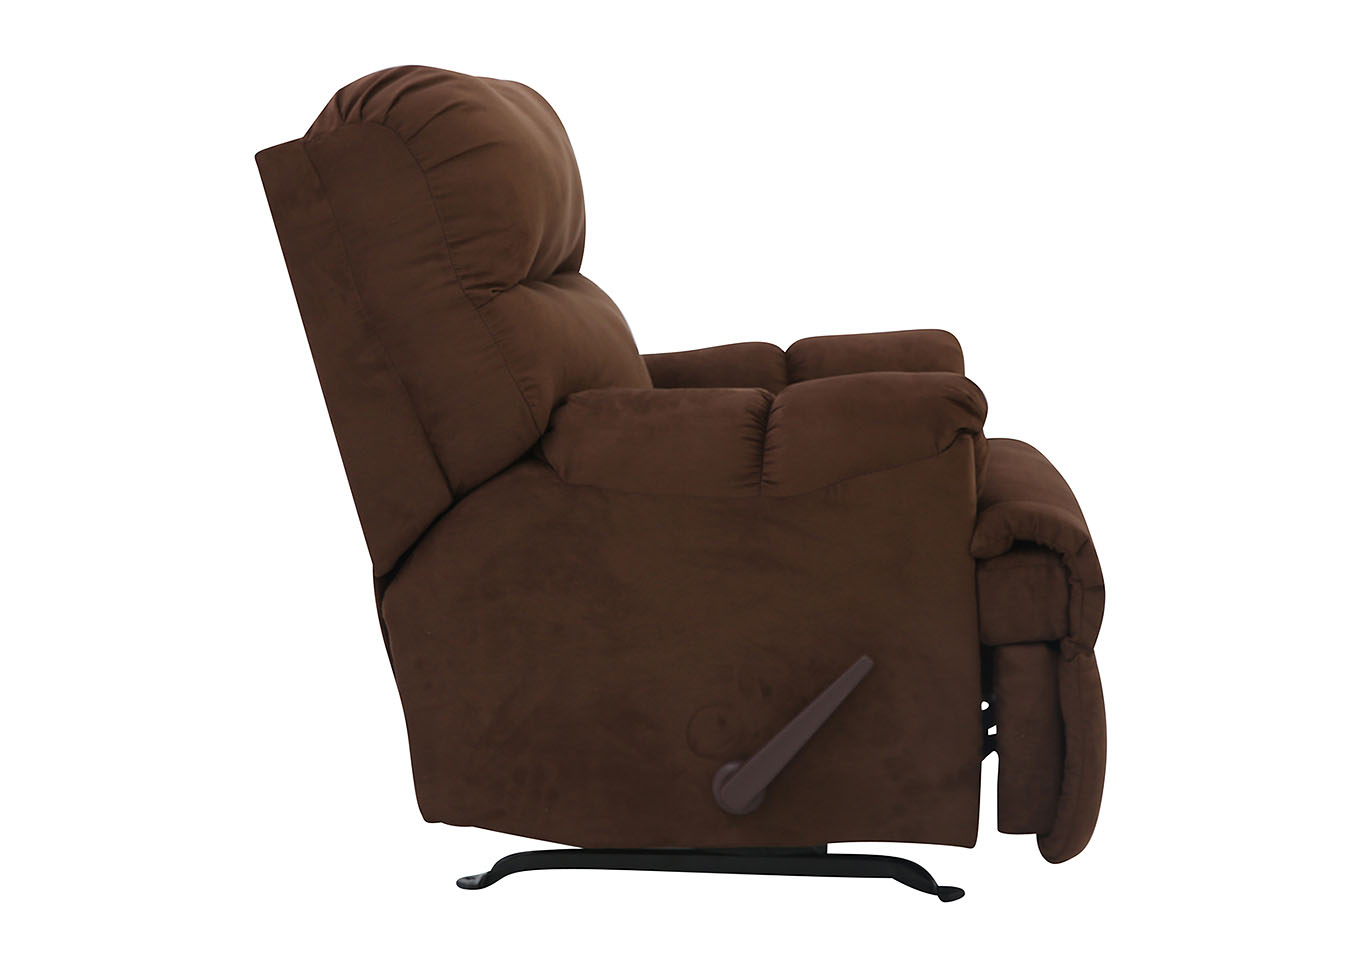 ANTHONY CHOCOLATE RECLINER,AFFORDABLE FURNITURE